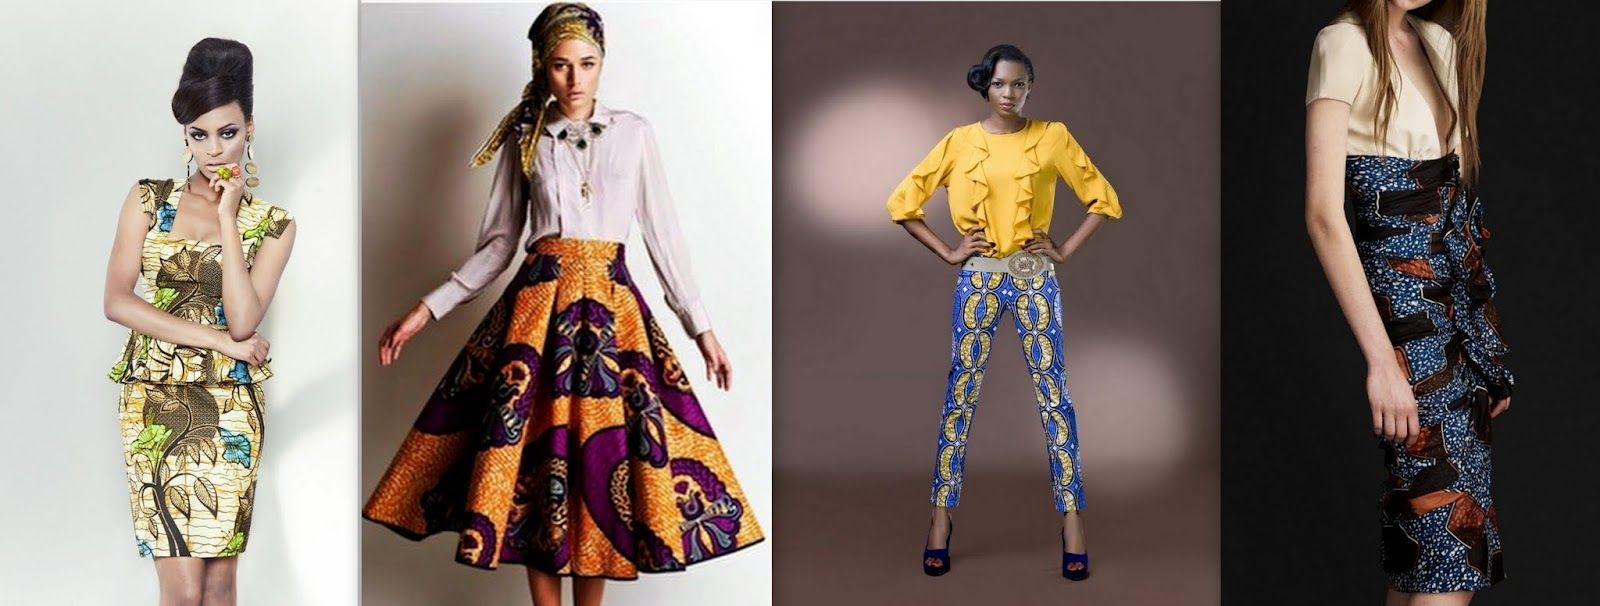 african fabric collage ideas - Saferbrowser Yahoo Image Search ...